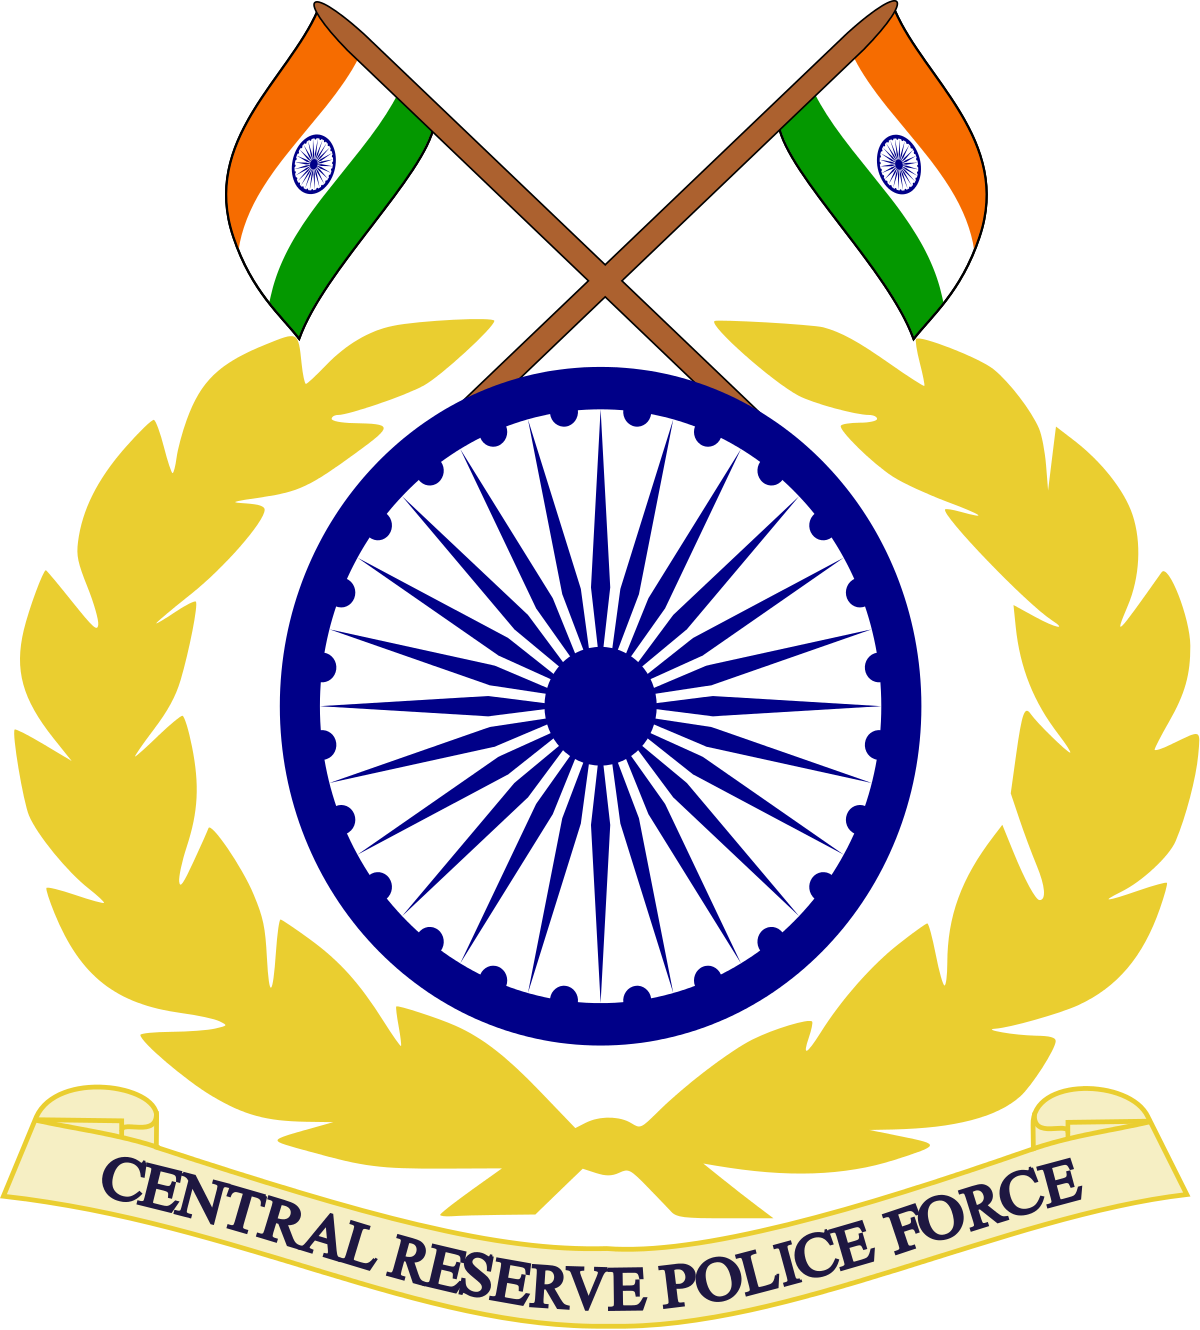 Central Reserve Police Force (India).